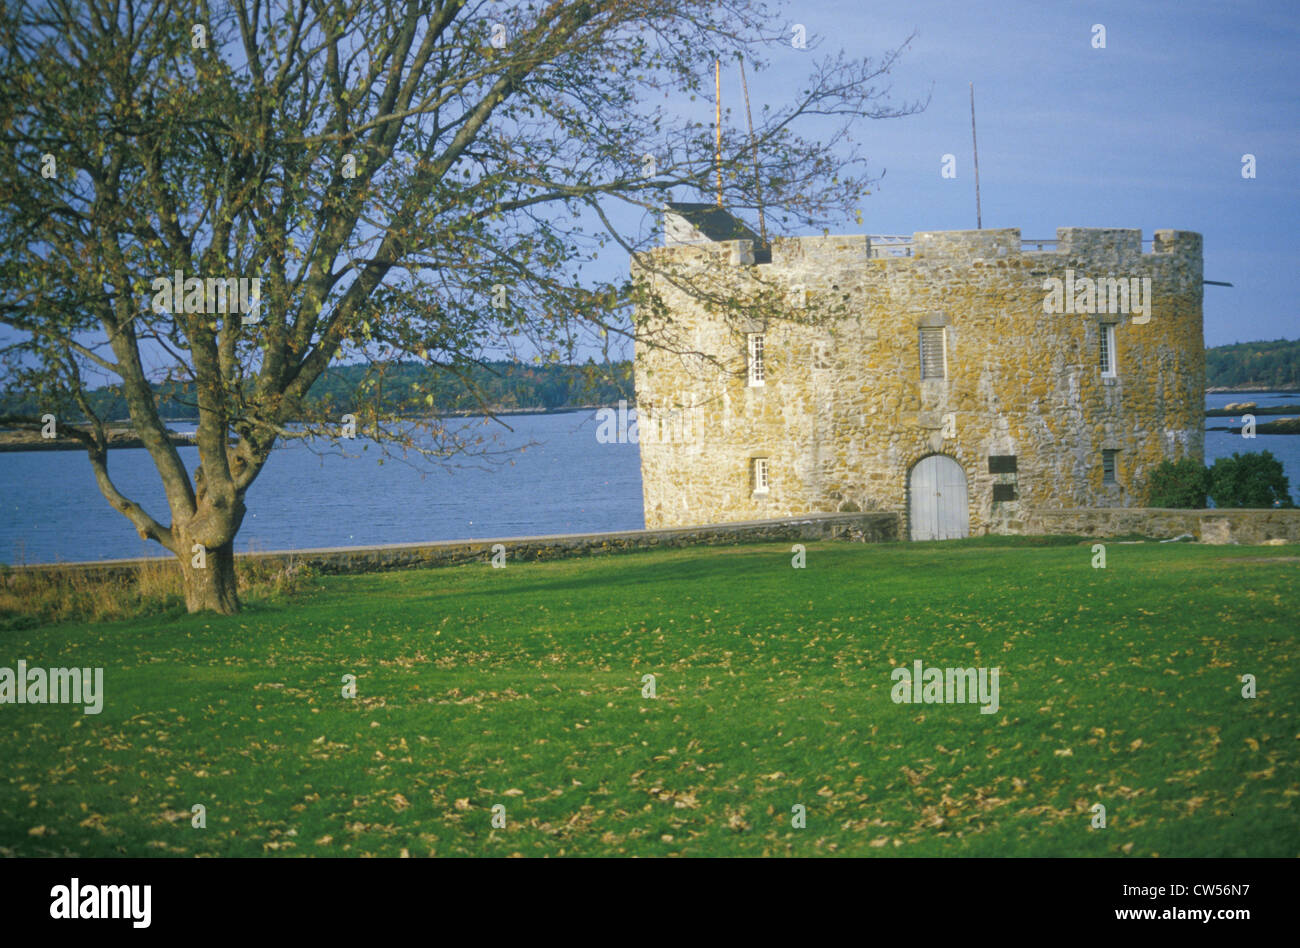 Fort William Henry in New Harbor, MN - Stock Image